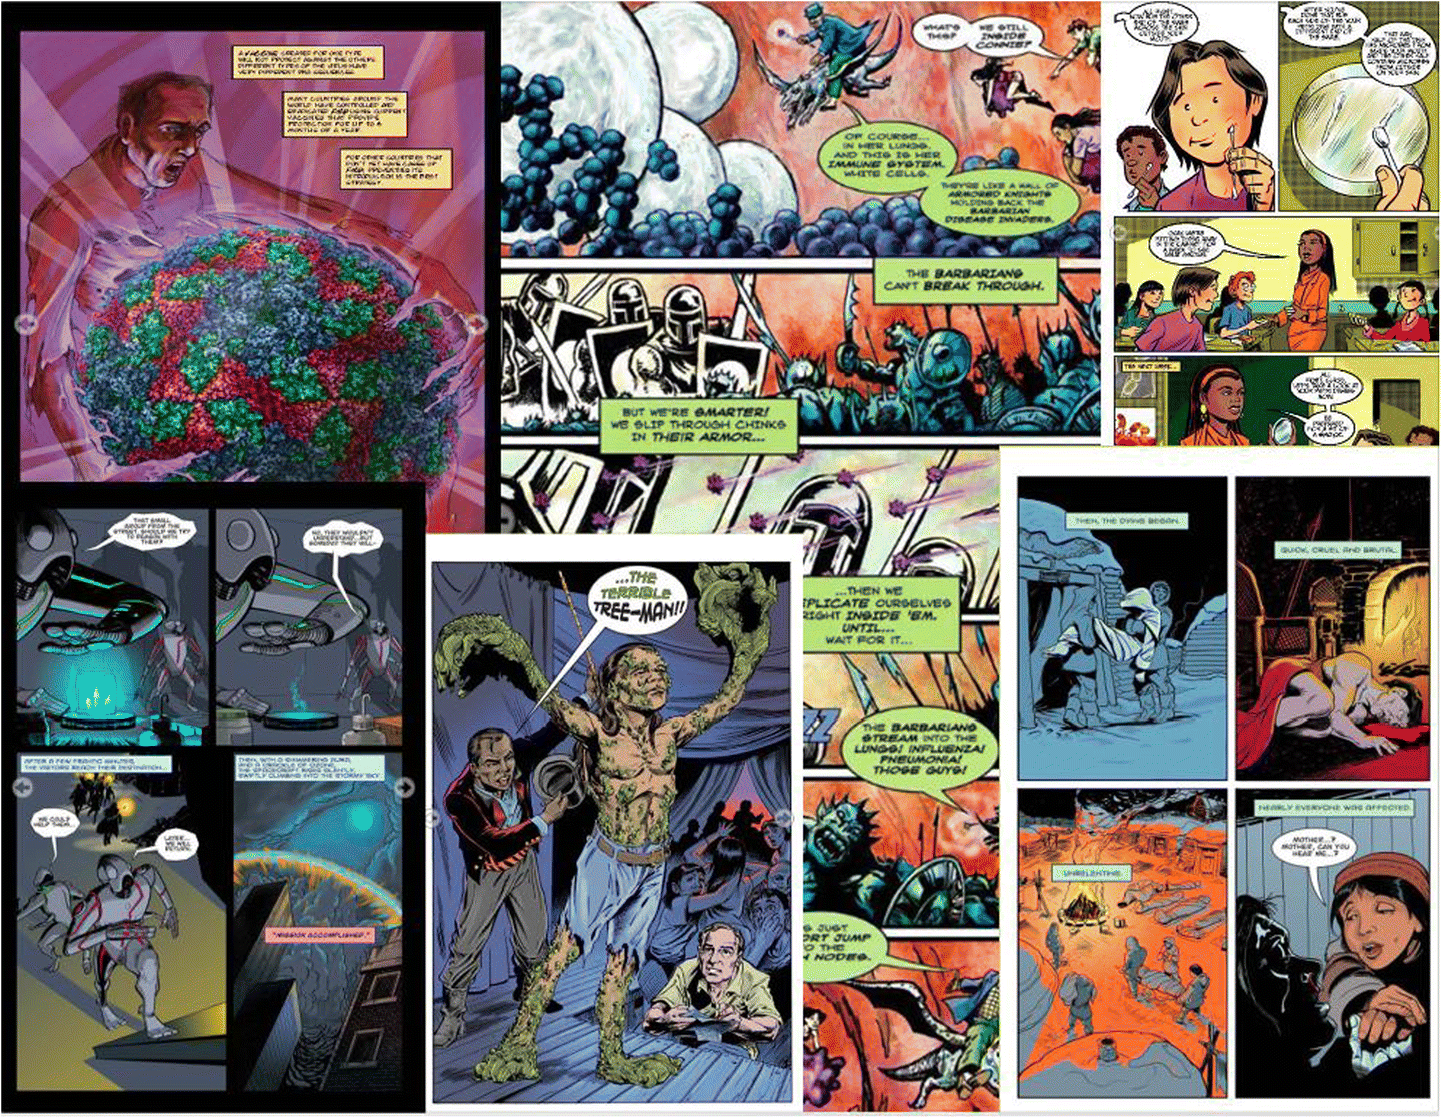 How Do Teachers Use Comics to Promote Engagement, Equity, and